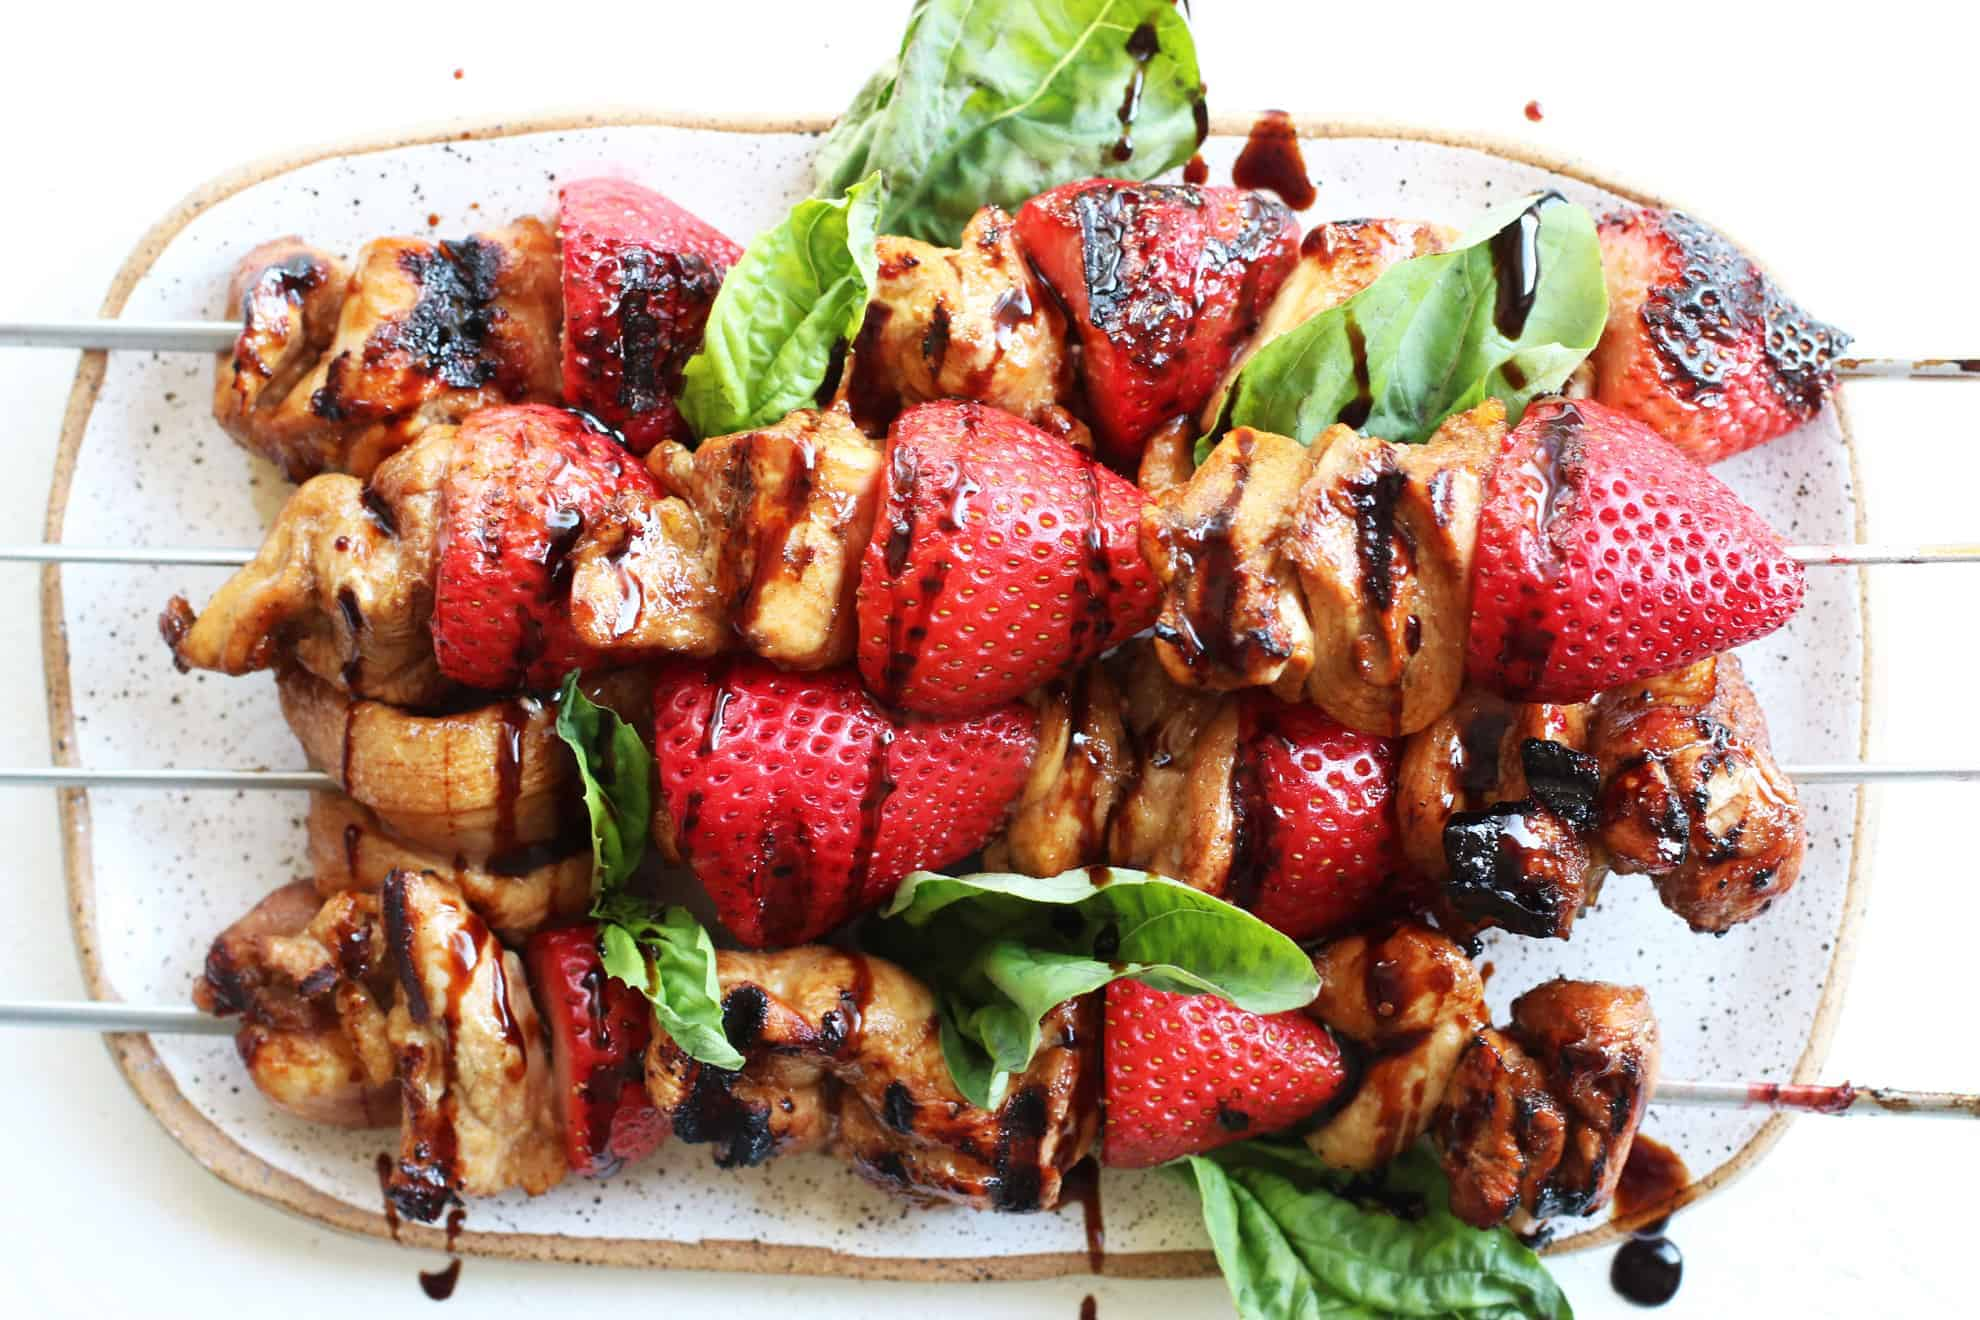 Grilled Strawberry Balsamic Chicken Kabobs